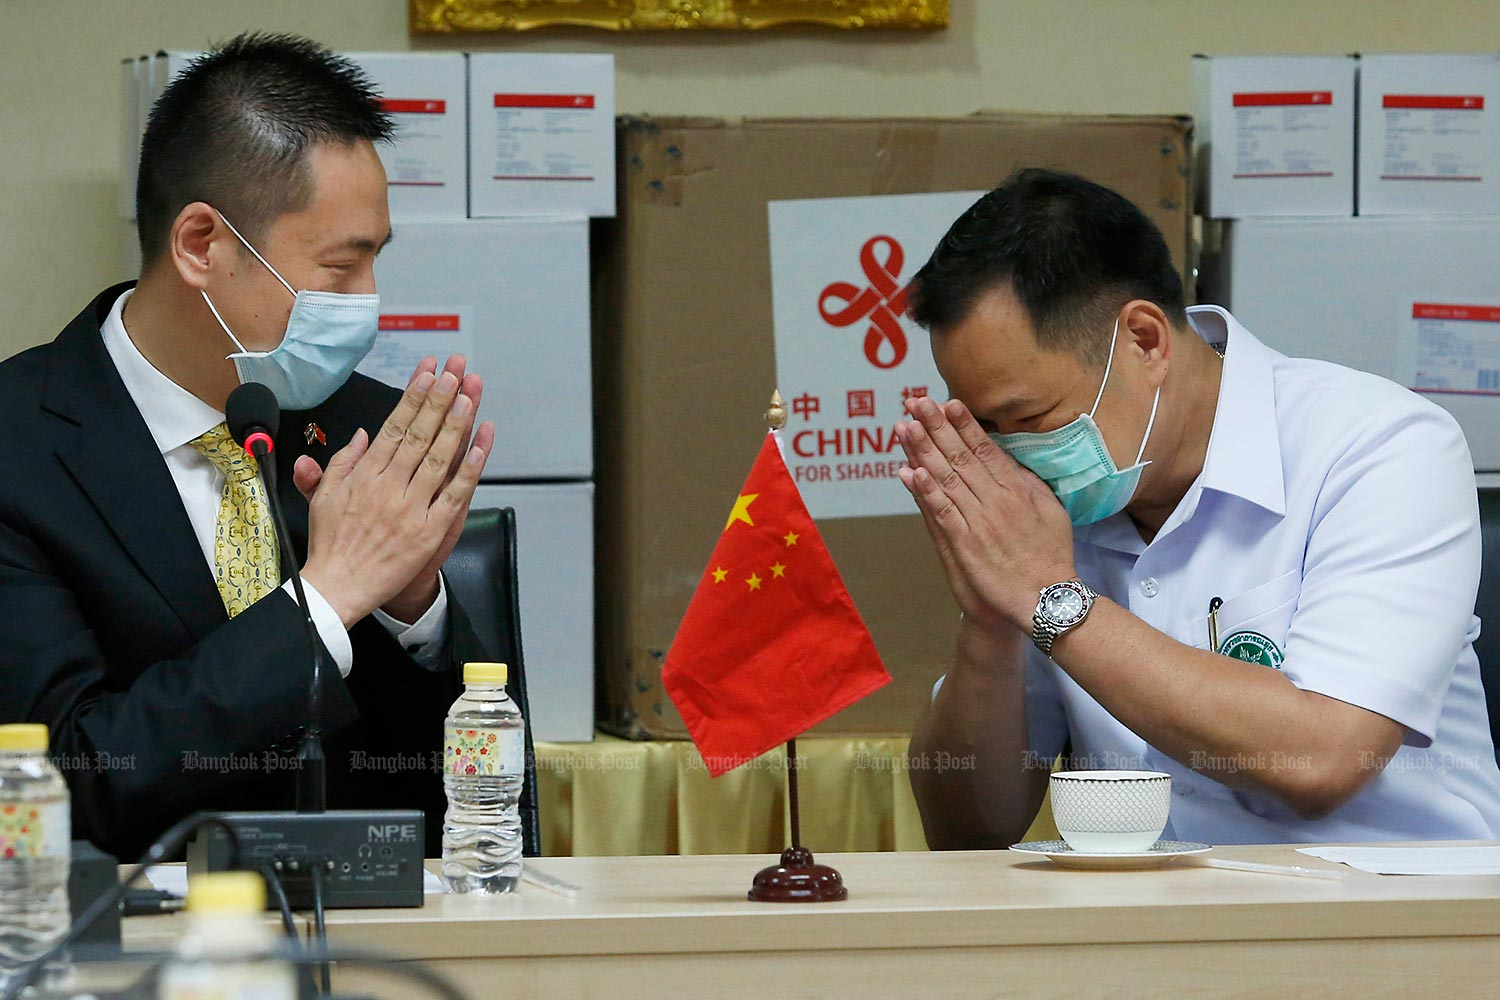 Wais for supplies: Public Health Minister Anutin Charnvirakul performs a wai to express his gratitude to Yang Xin, Charge d'Affaires for the Chinese embassy in Bangkok, for China's donations of medical supplies which have just arrived in Thailand. (Photo by Pattarapong Chatpattarasill)